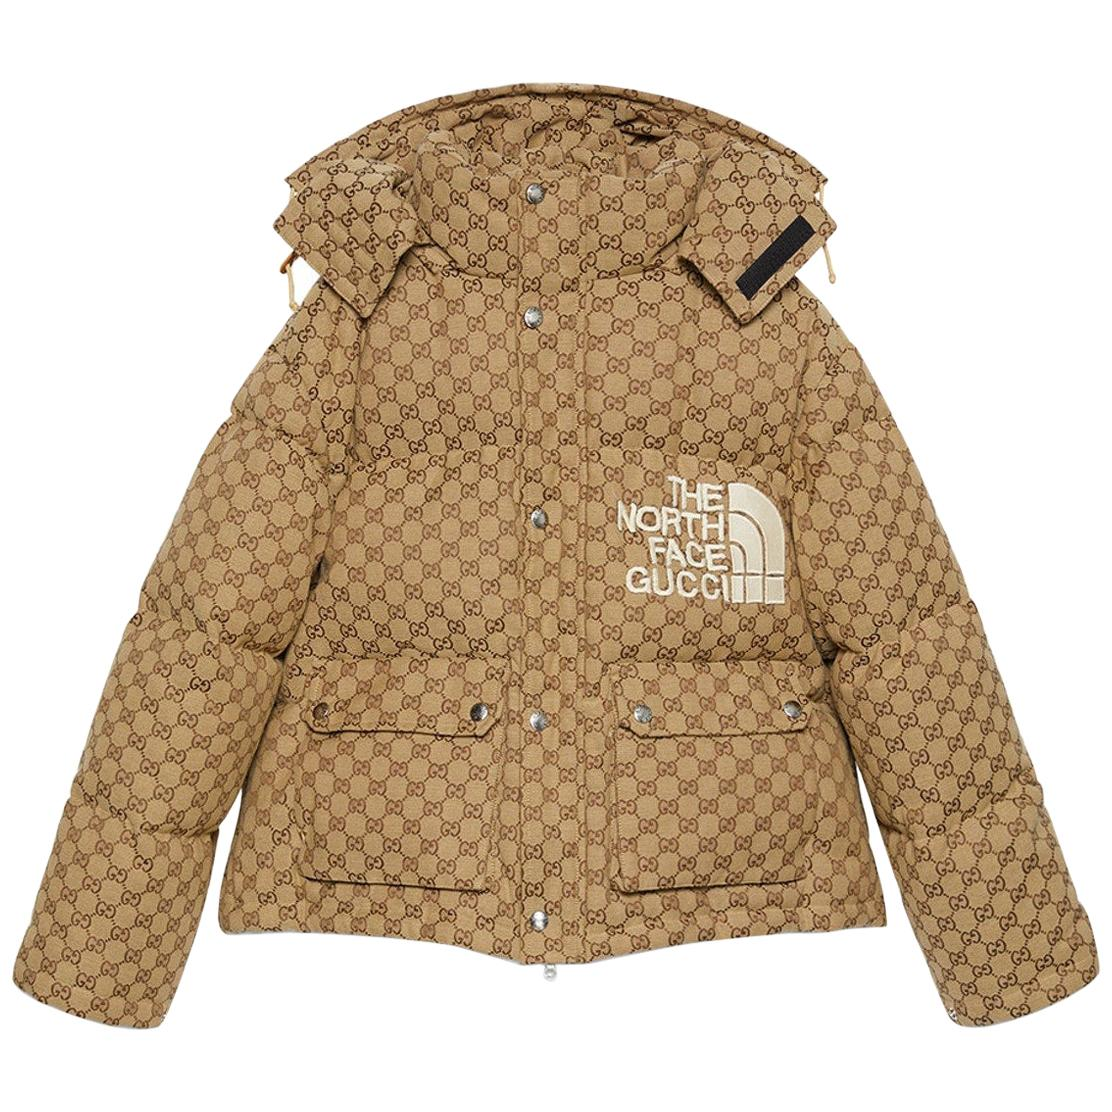 GUCCI SPECIAL ORDER North Face GG print Monogram 2021 Collection Medium Unisex